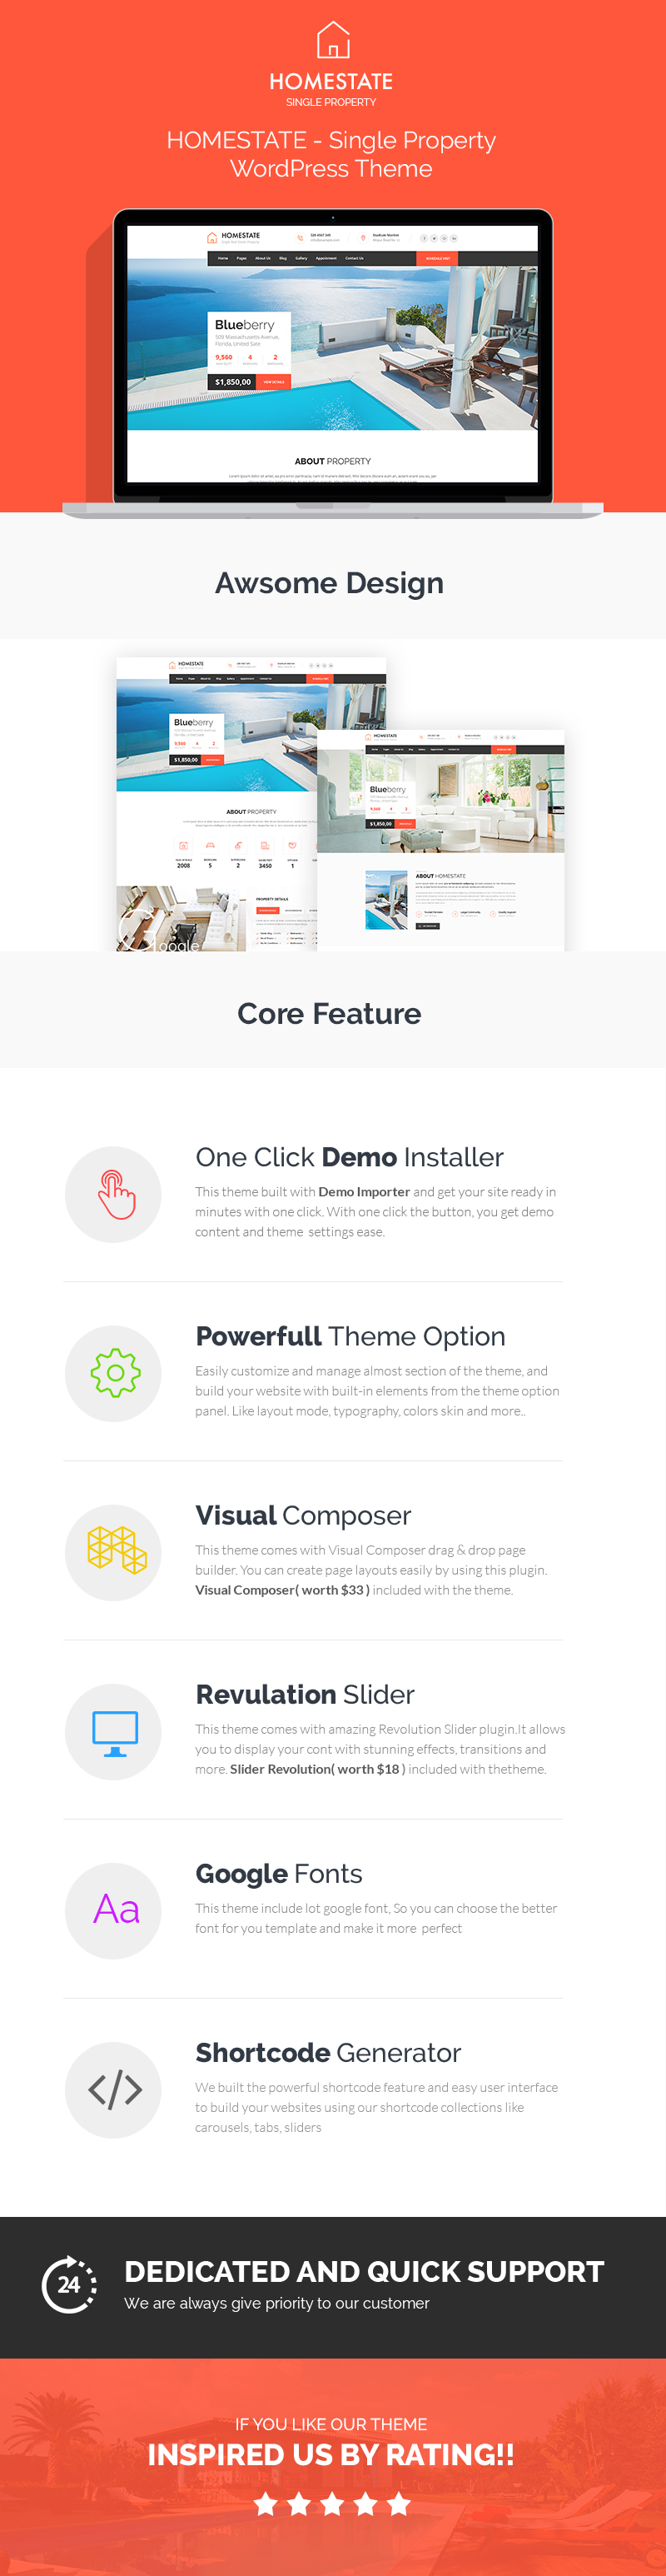 HOME STATE - Single Property Immobilien WordPress Theme - 1